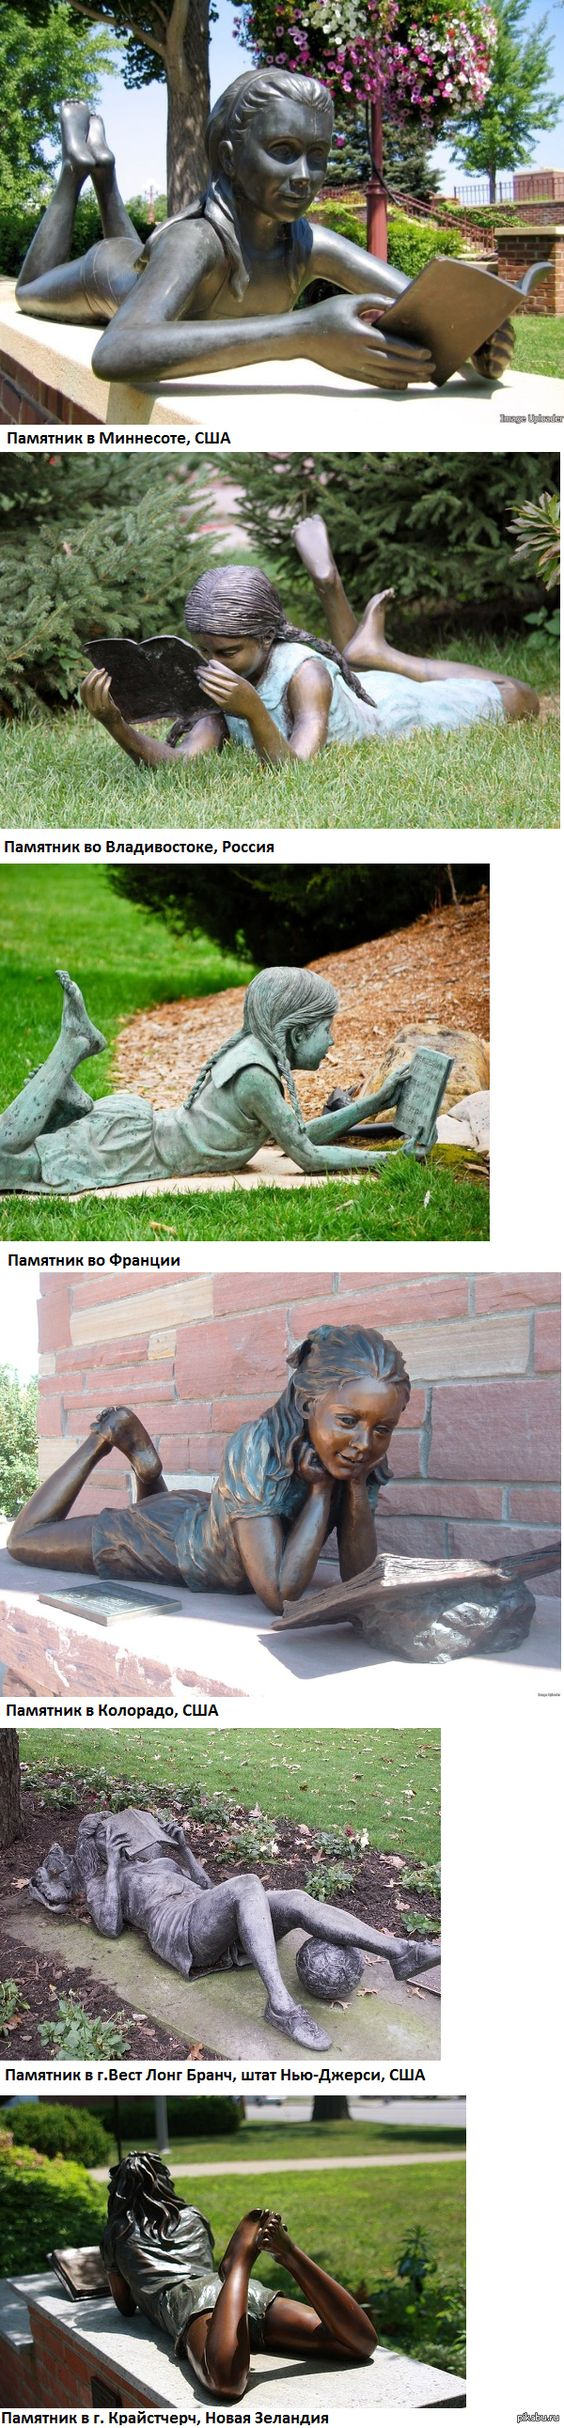 Sculptures of girls reading - different locations in the world (I can't read Russian, but 'CWA' is USA, and 'Poccnr' is Russia)